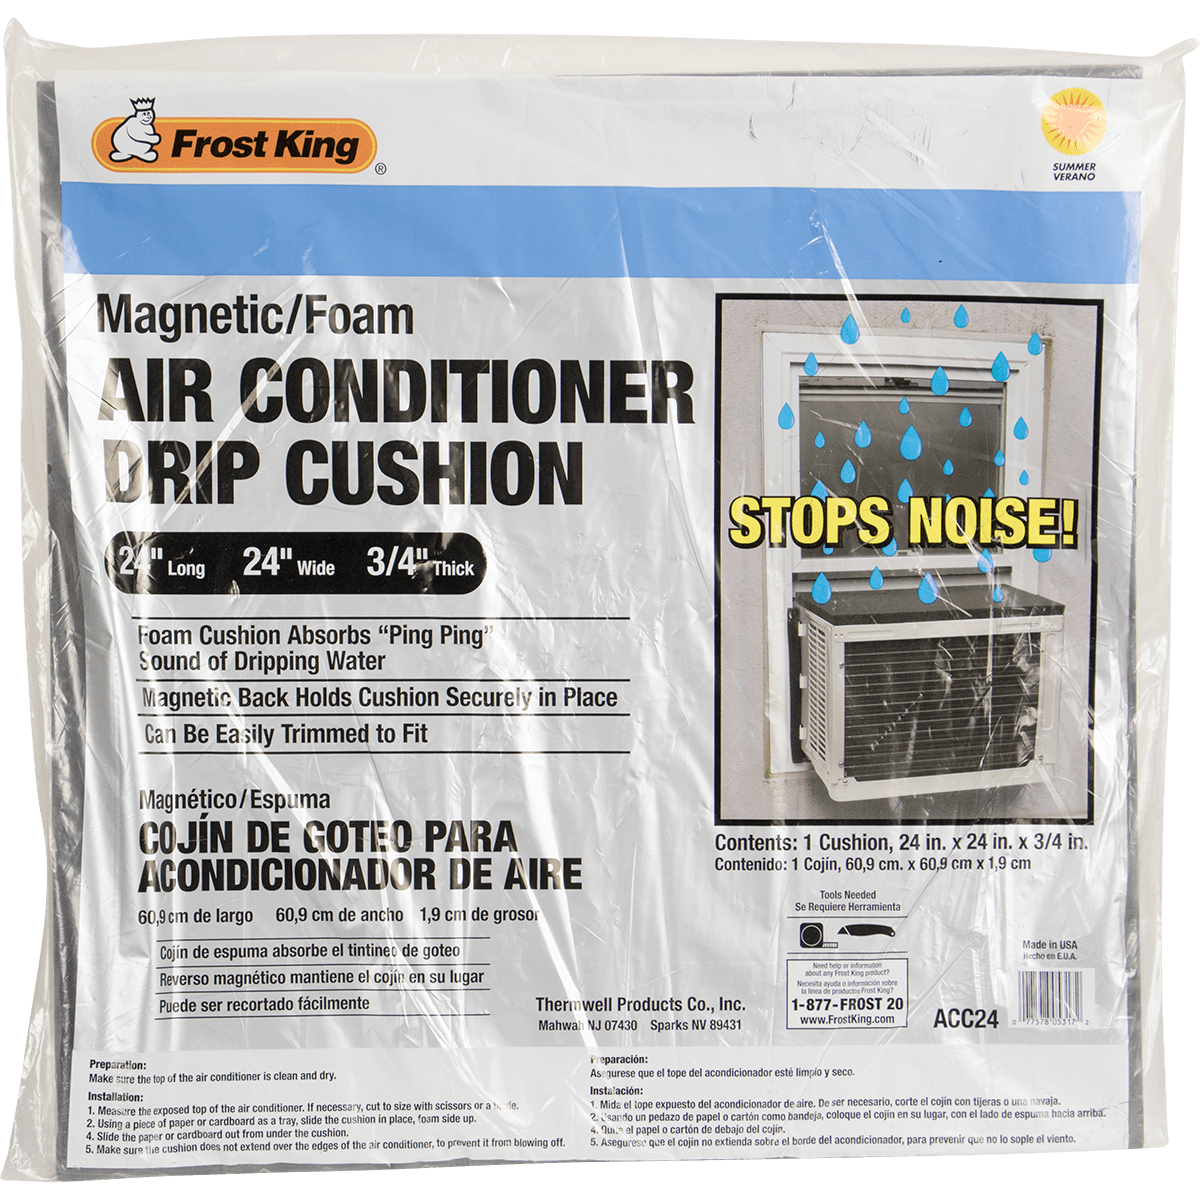 Frost King ACC24 Air Conditioner Drip Cushion Sylvane in